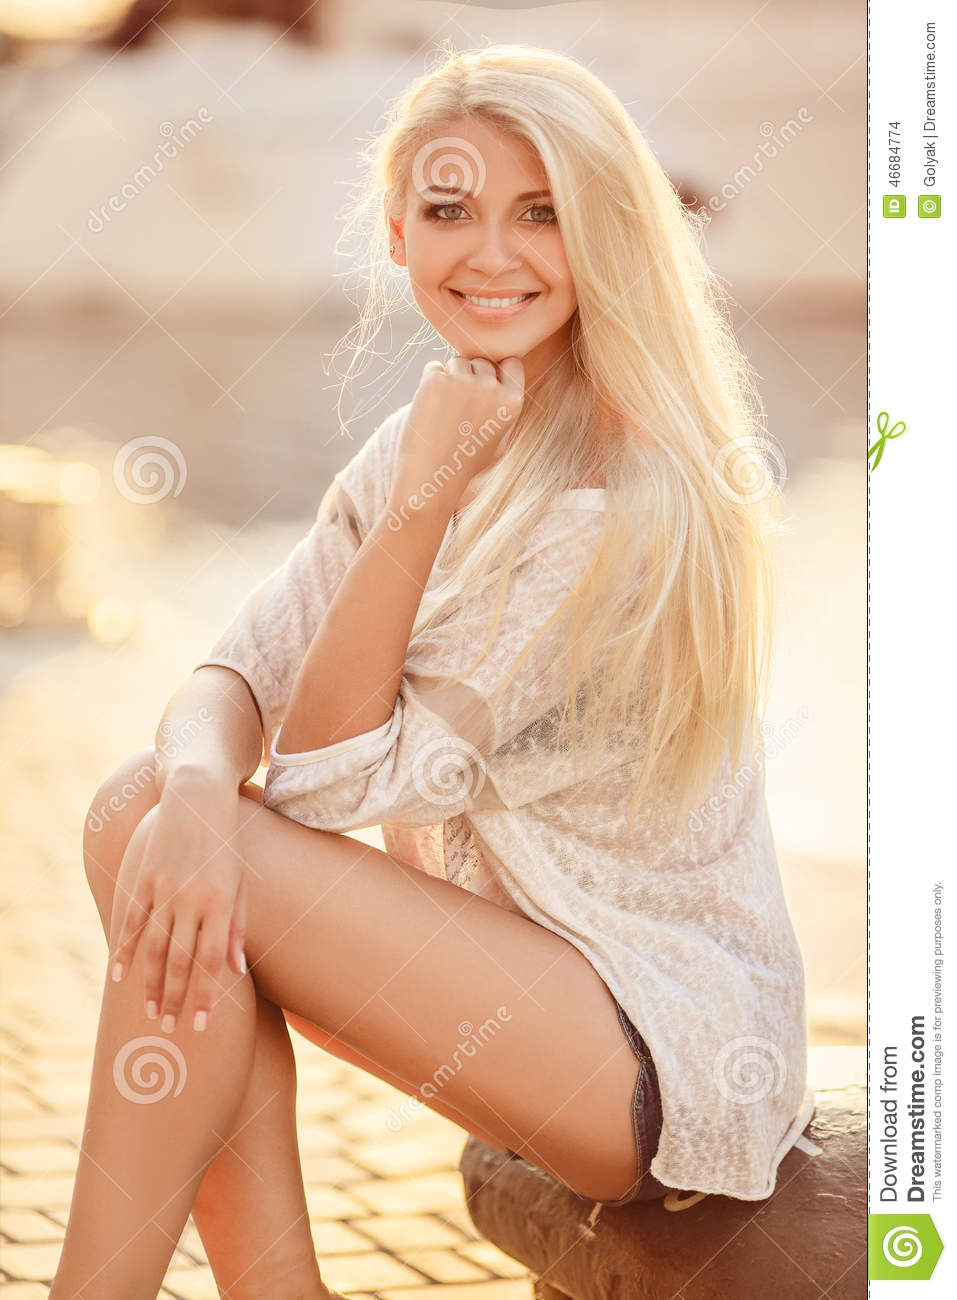 Beautiful blonde girl in the street of the city.